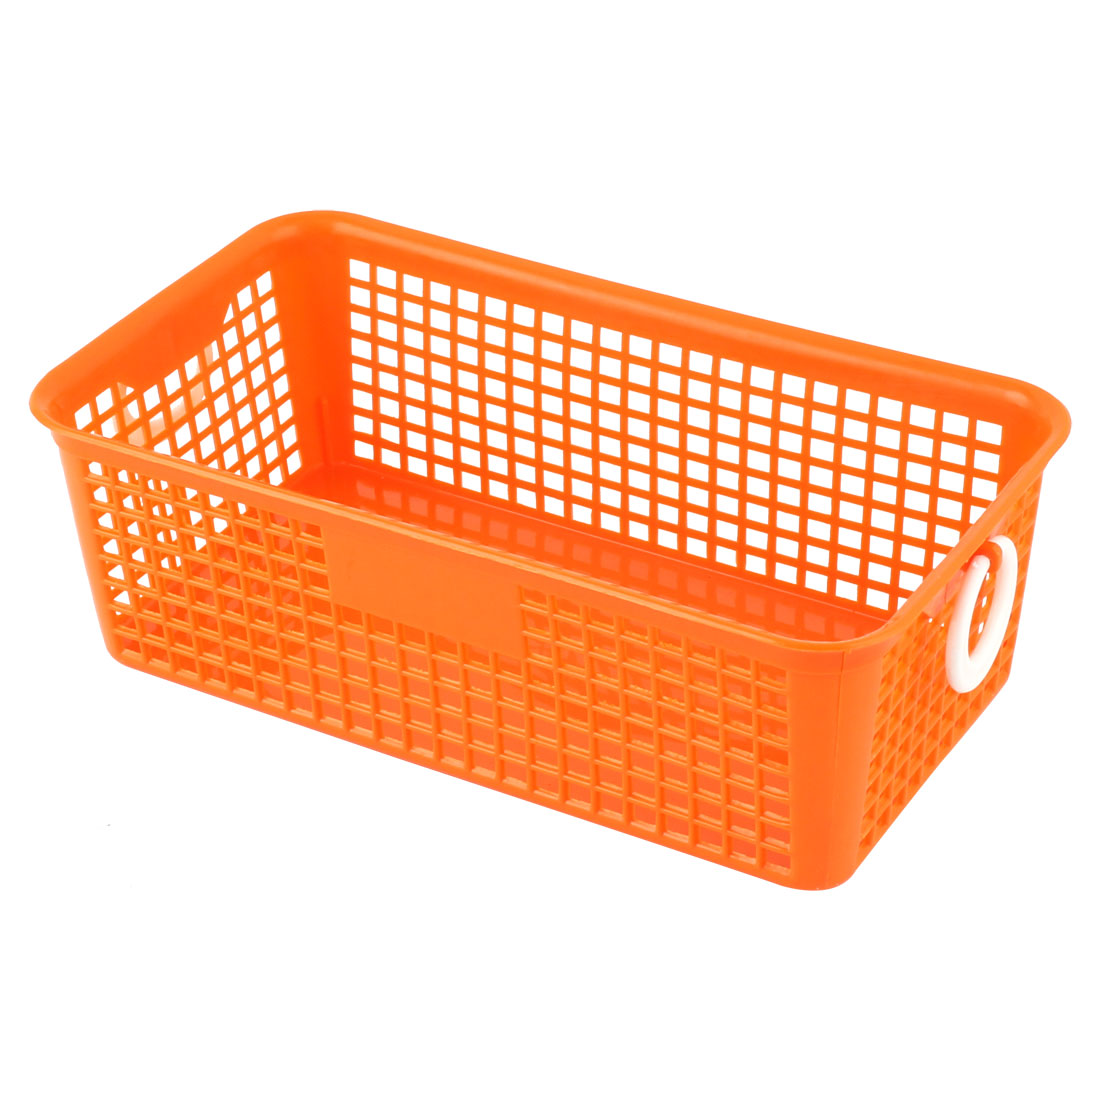 Family Kitchen Bathroom Plastic Rectangle Binaural Storage Basket Organizer Holder Orange